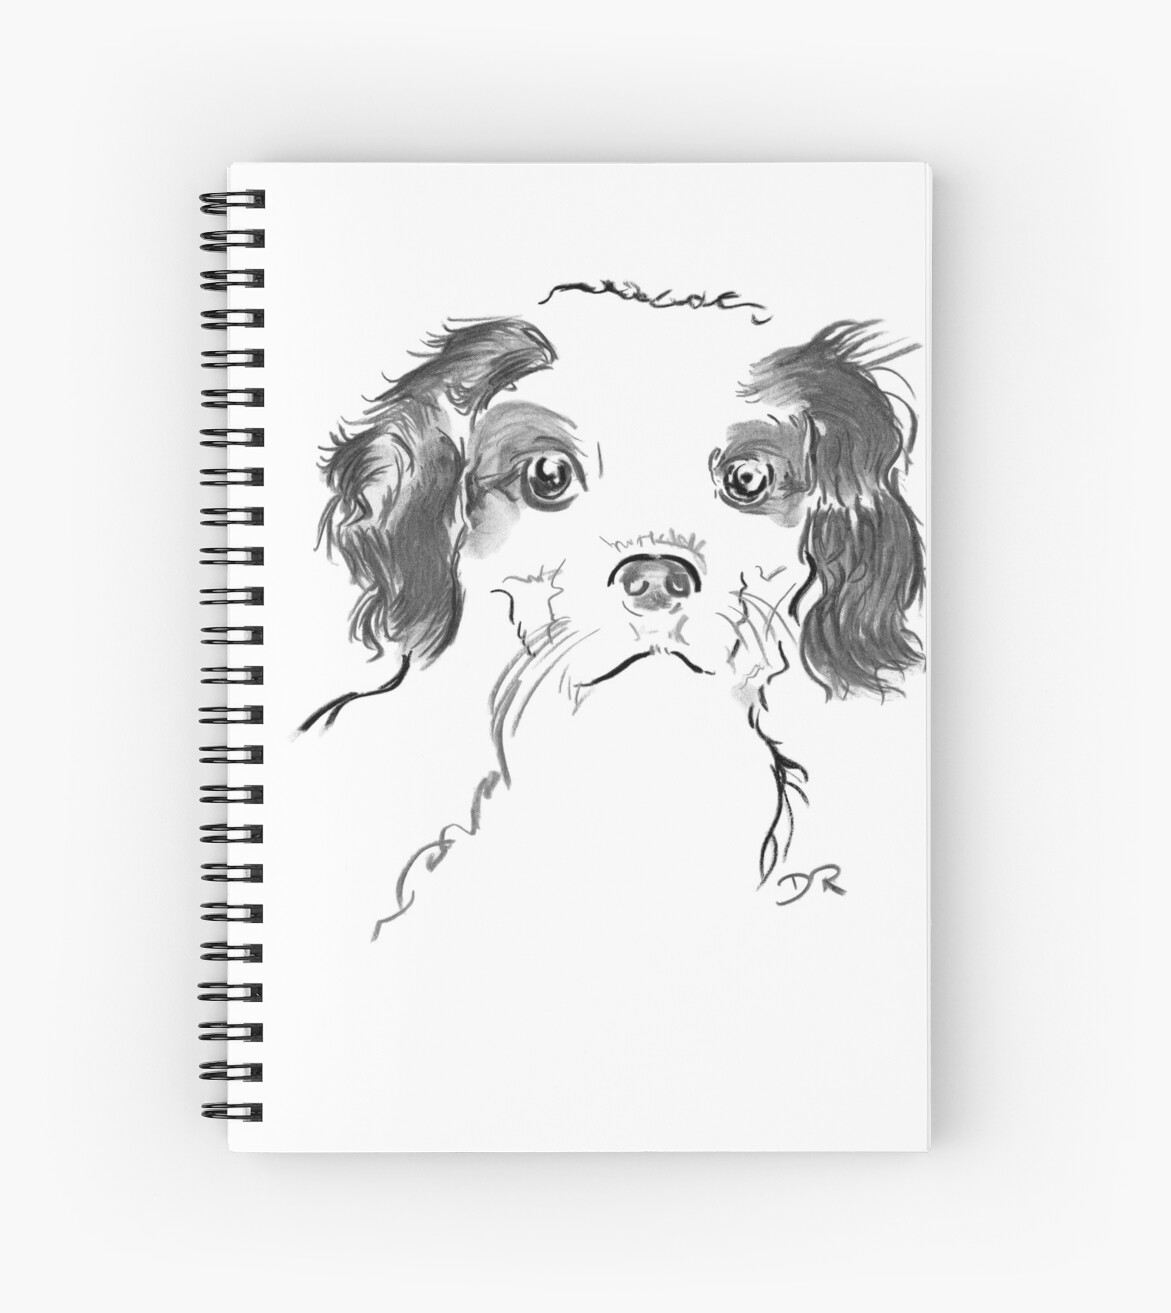 Cavalier King Charles Spaniel Puppy Drawing by Douglas Rickard